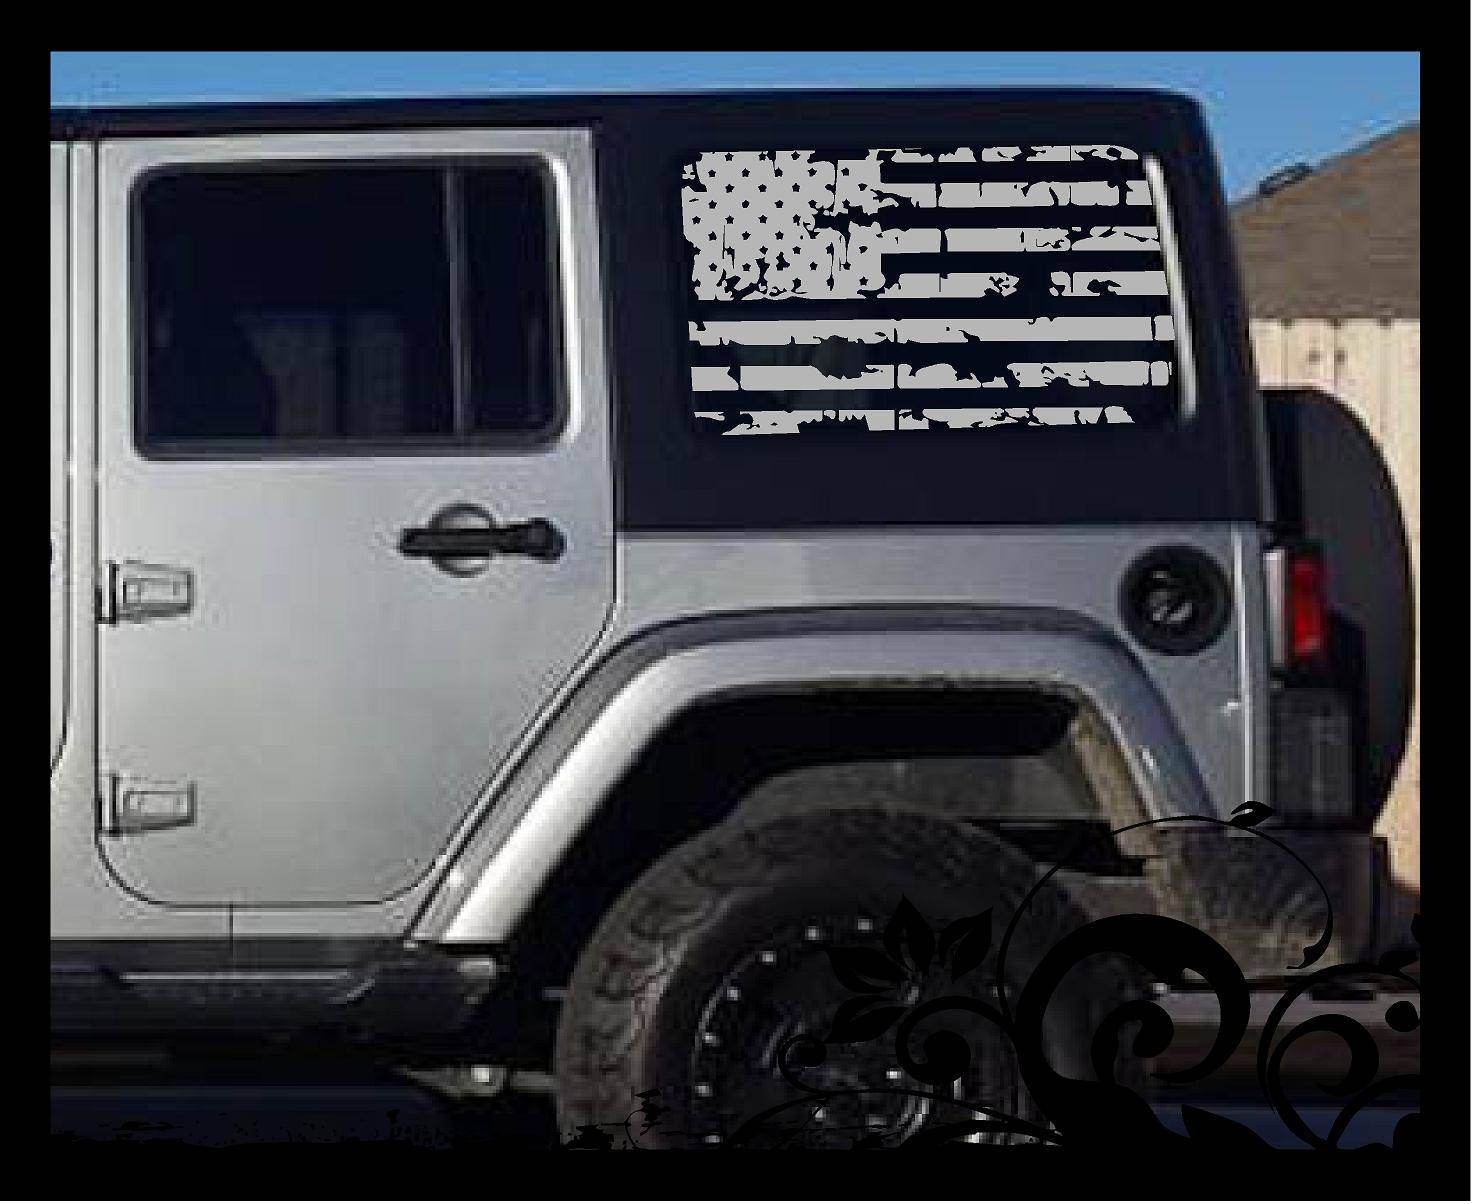 Flag Decal Jeep Wrangler Side Window American Distressed Flag Decals Vehicle Back Window Decal Patriotic Usa Stars And Stripes Jeep Wrangler Jeep Flag Decal